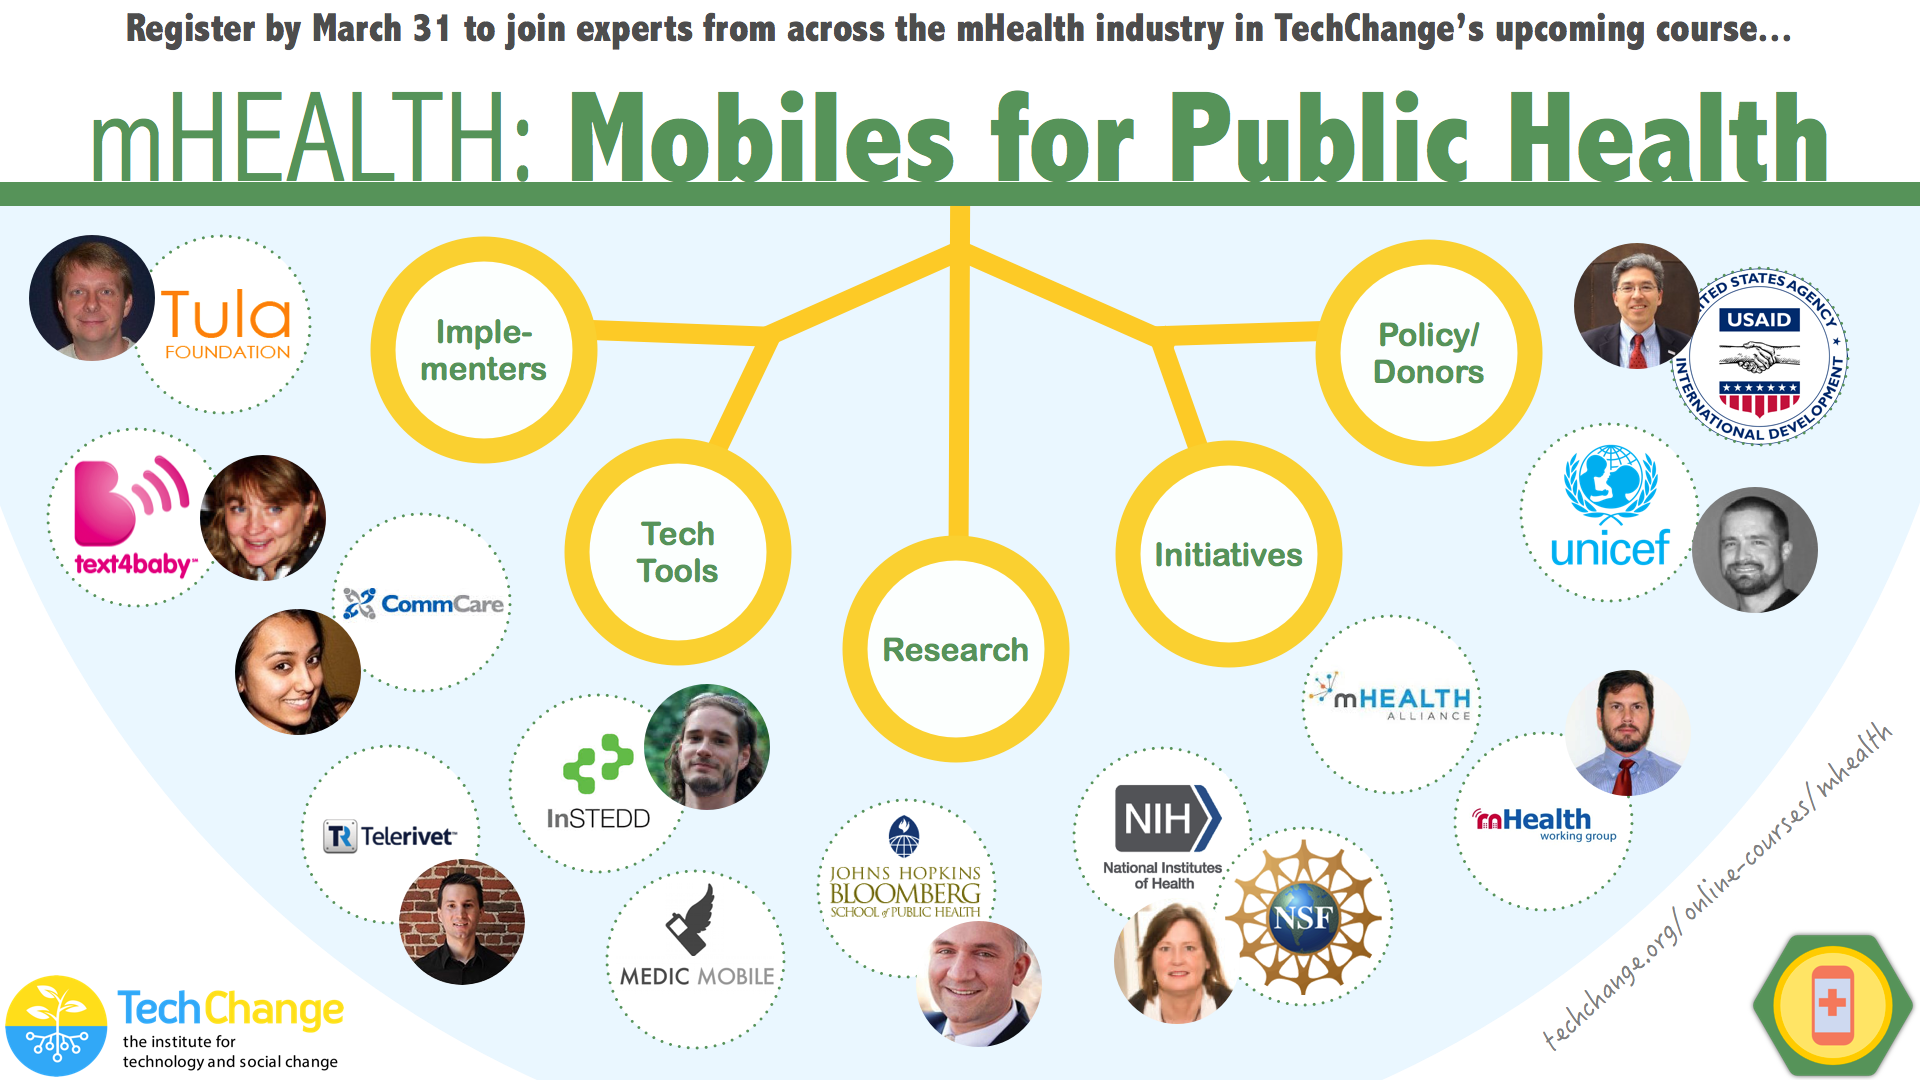 mHealth Mobiles Public Health TechChange spring 2014